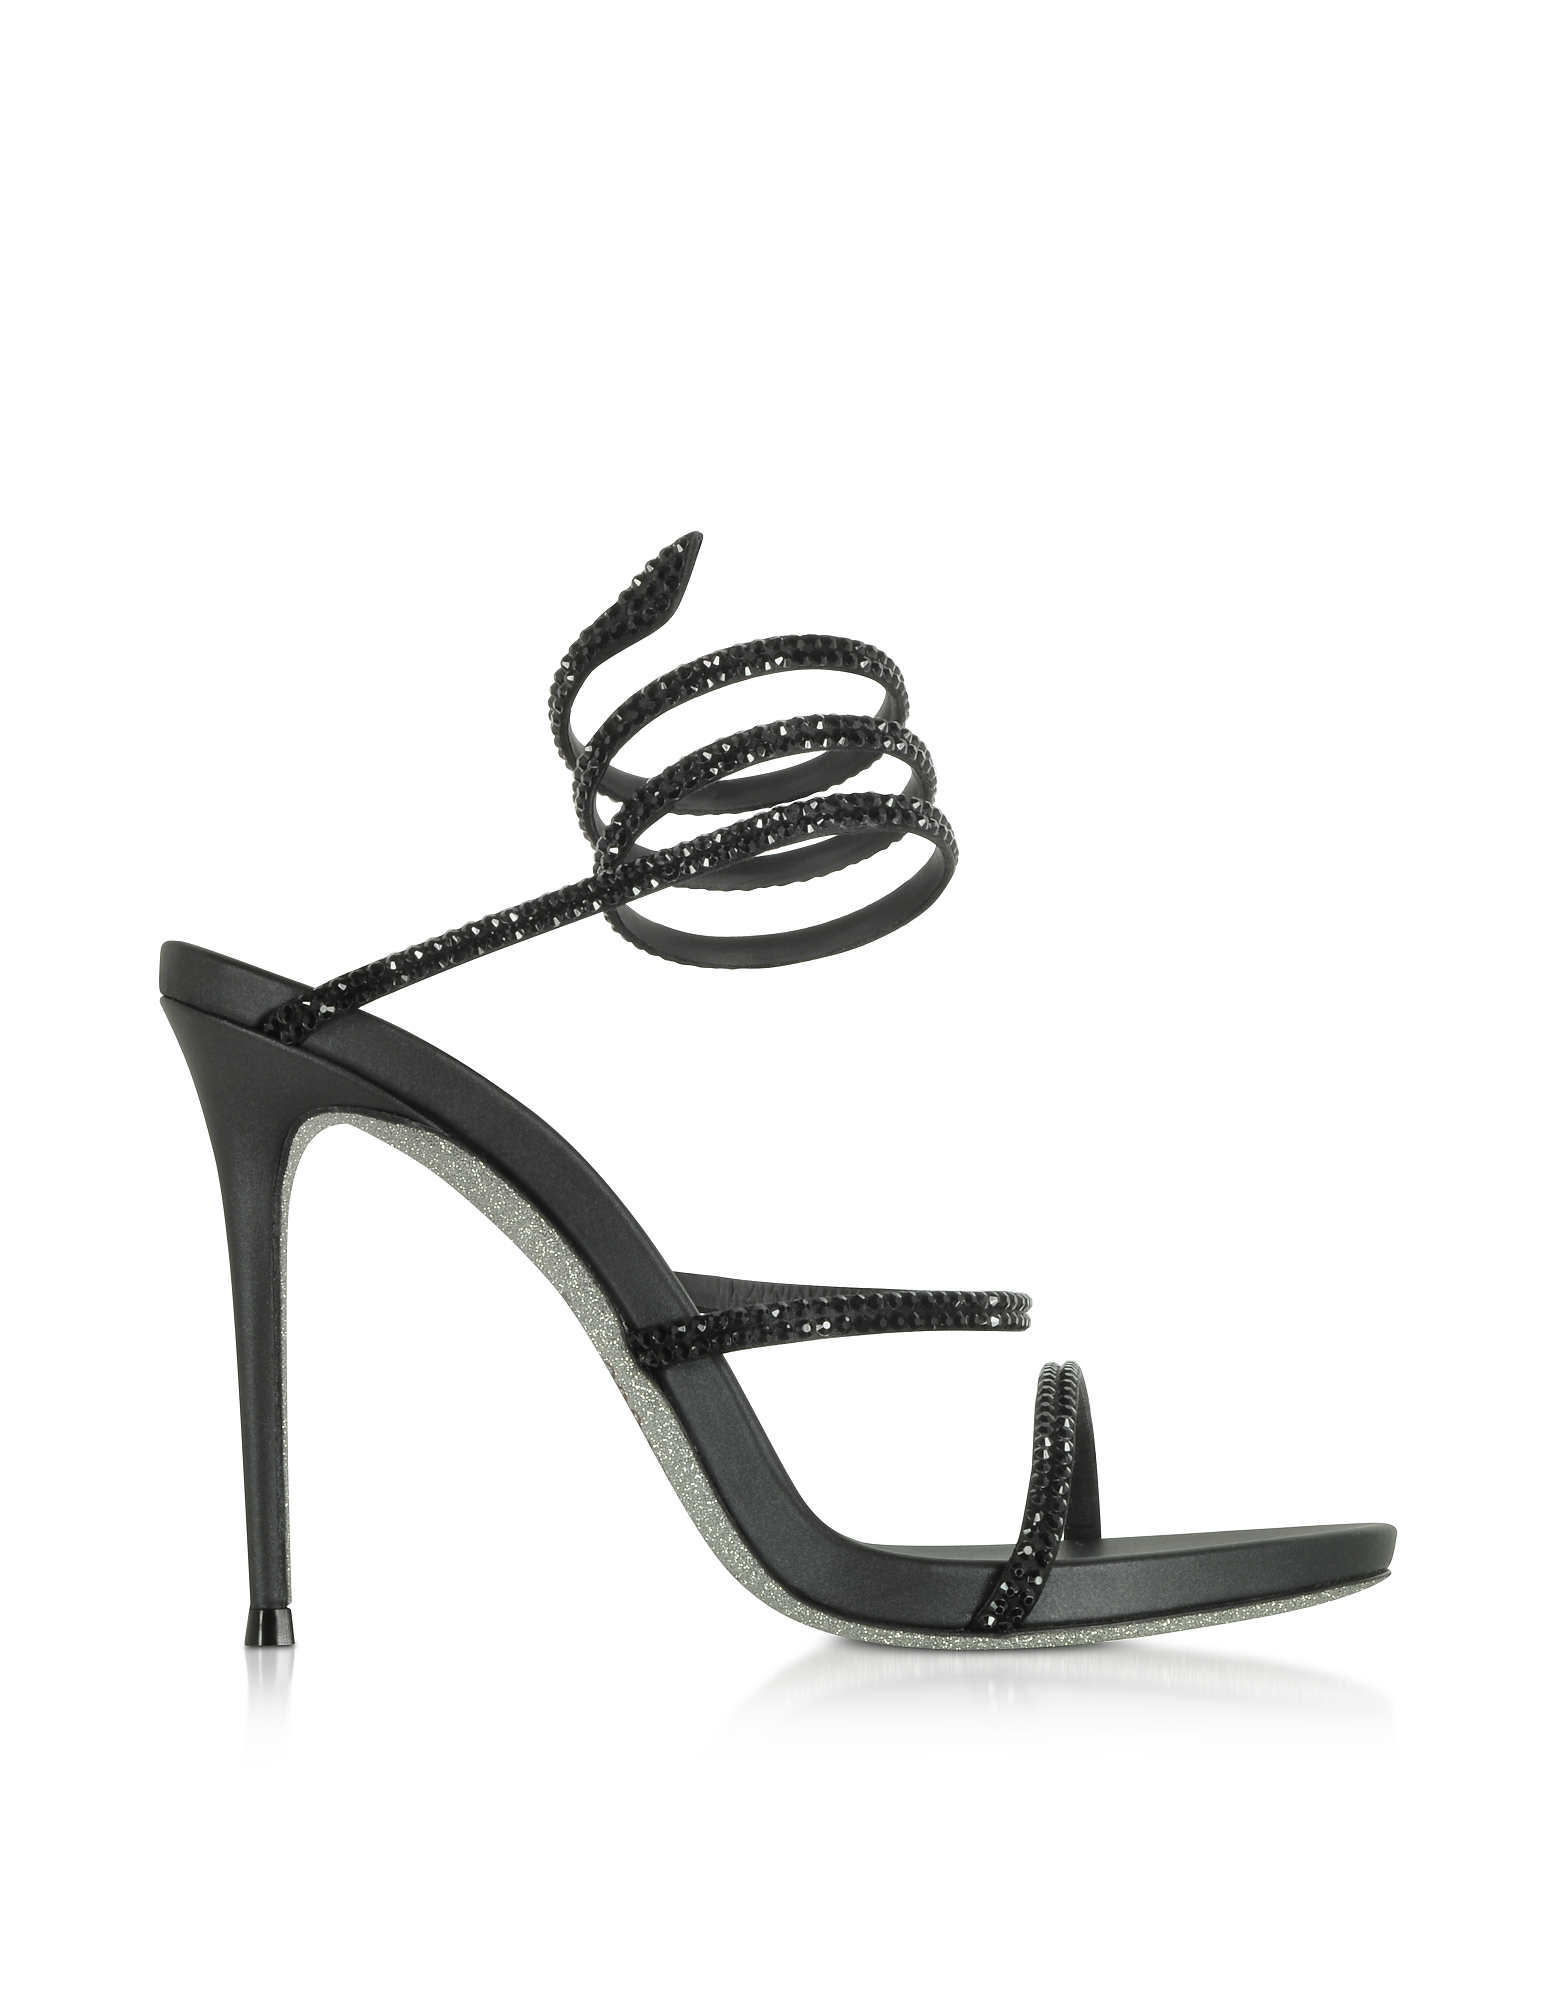 Rene Caovilla Shoes, Black Satin and Strass High Heel Sandals